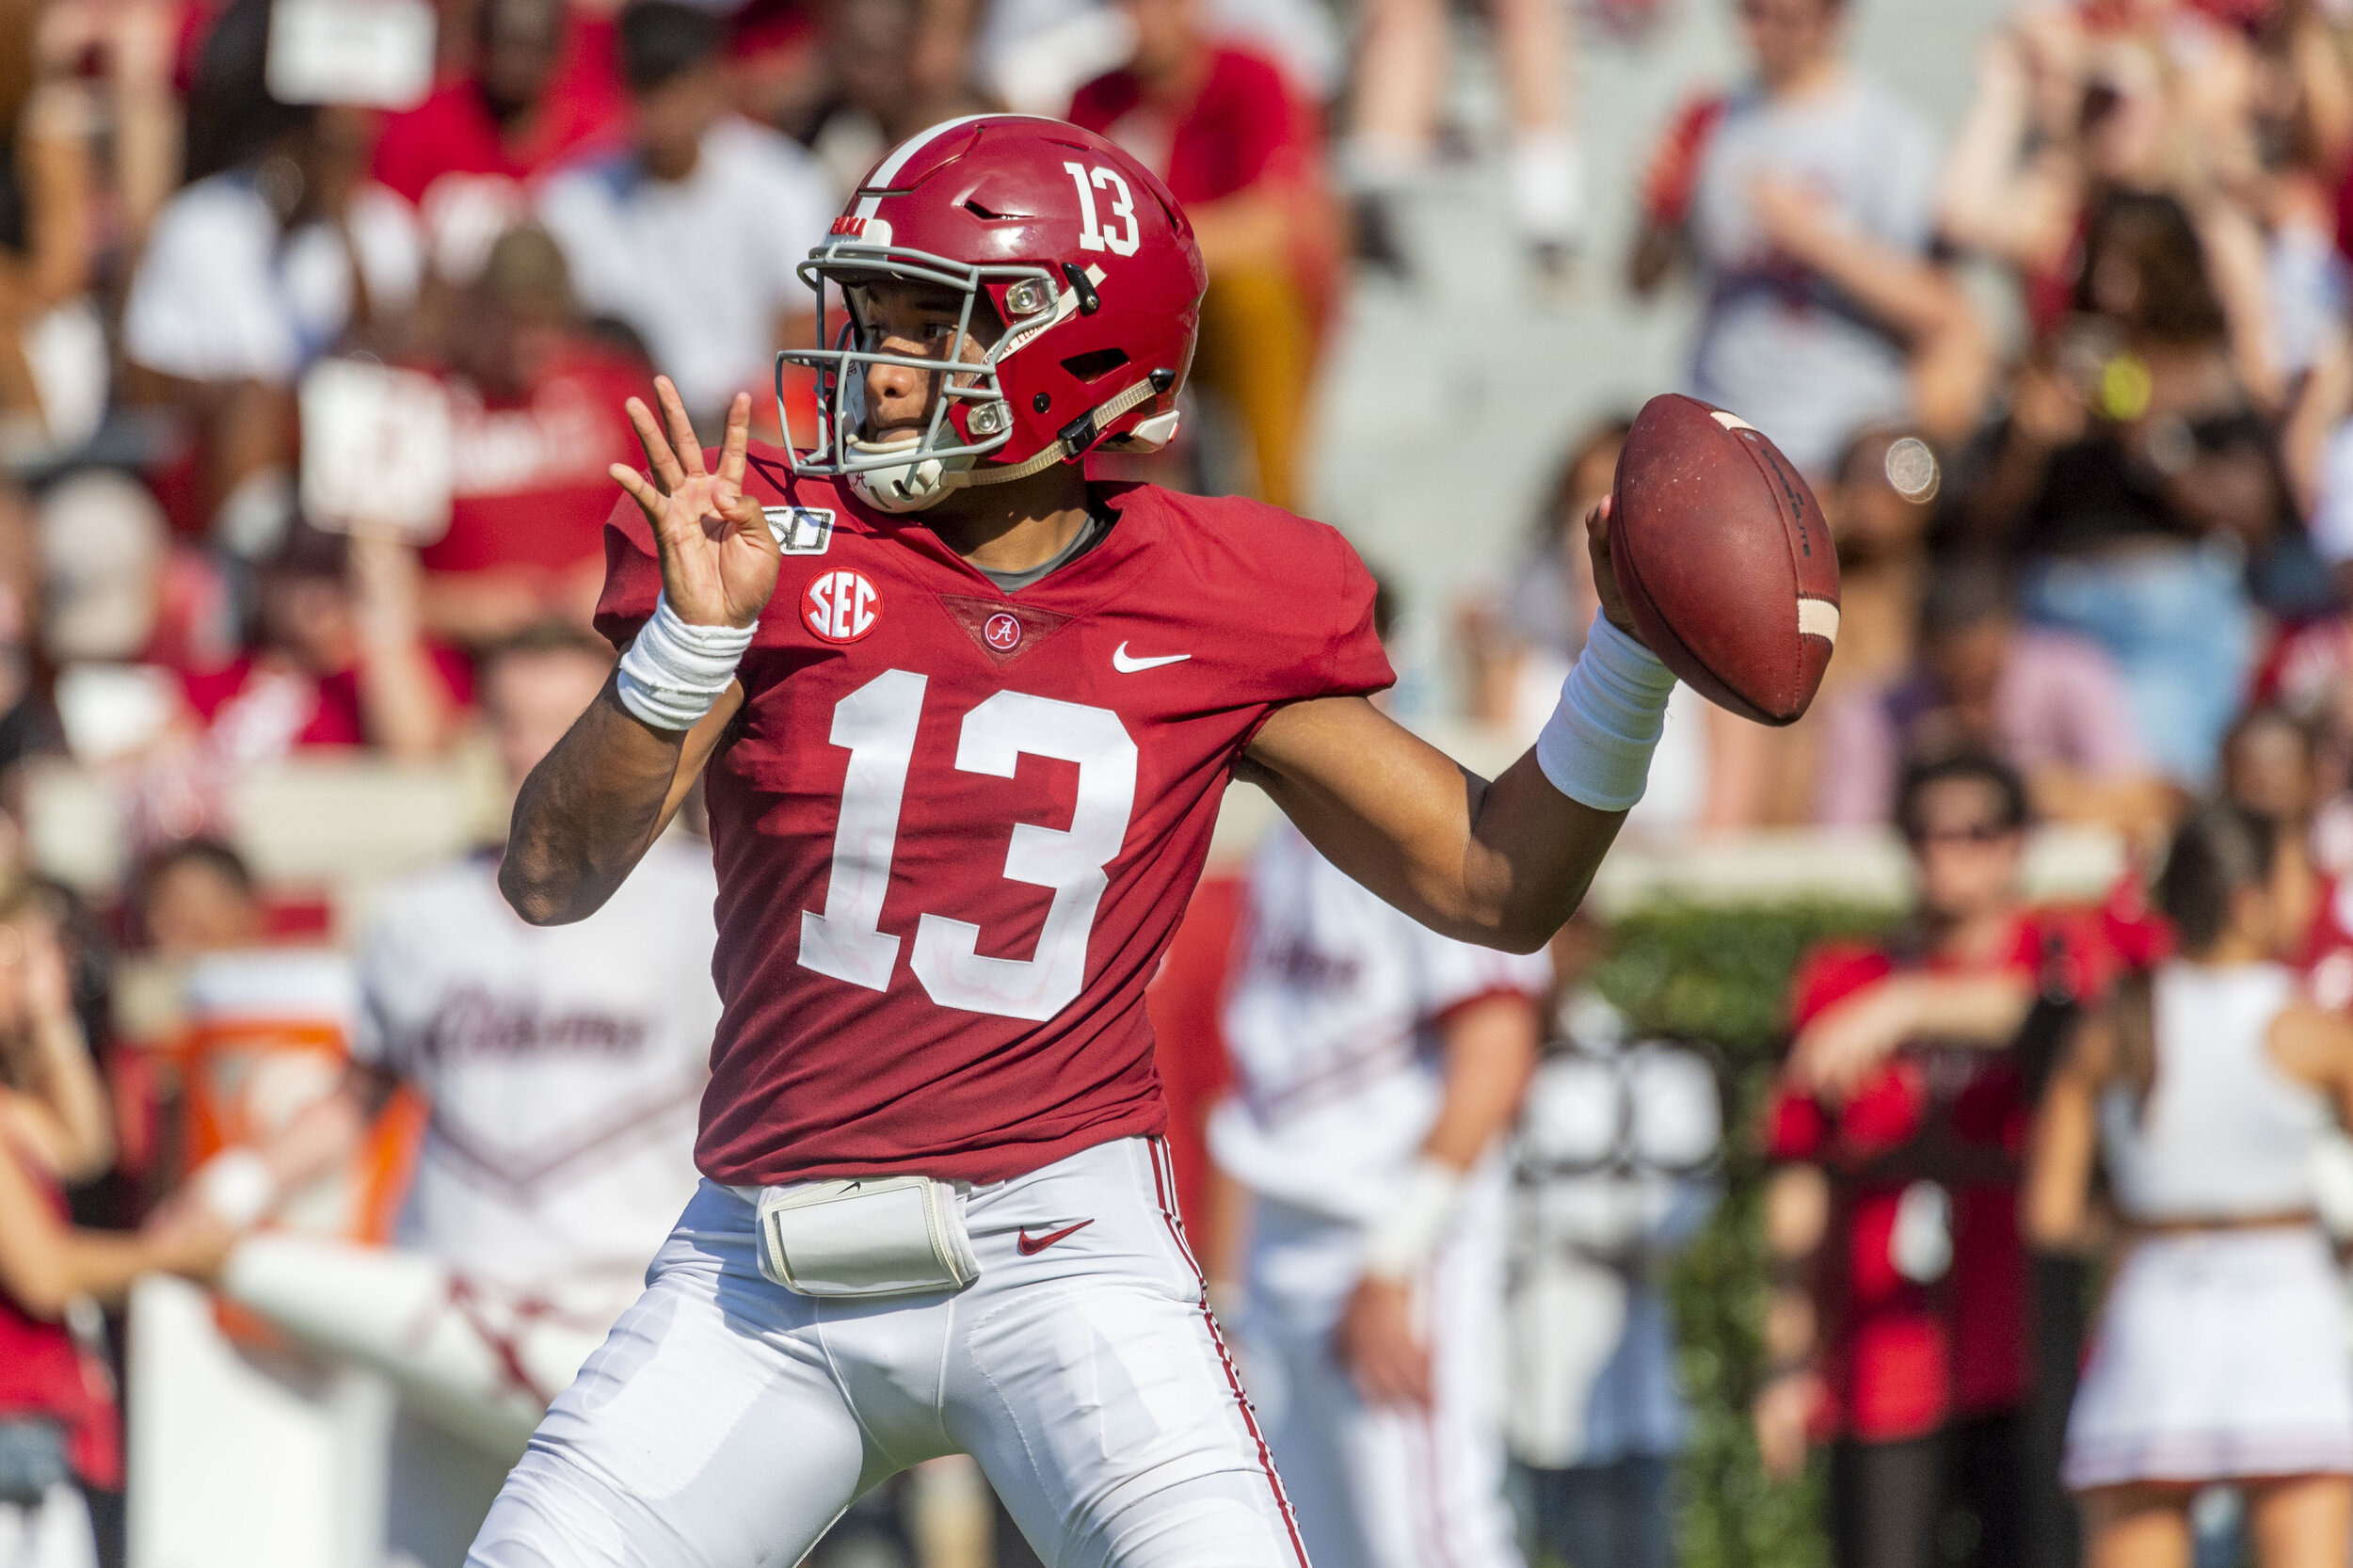 Alabama QB Tua Tagovailoa is leading the Heisman Trophy race after starting the season off 3-0 with very impressive numbers.  Photo from The Associated Press.